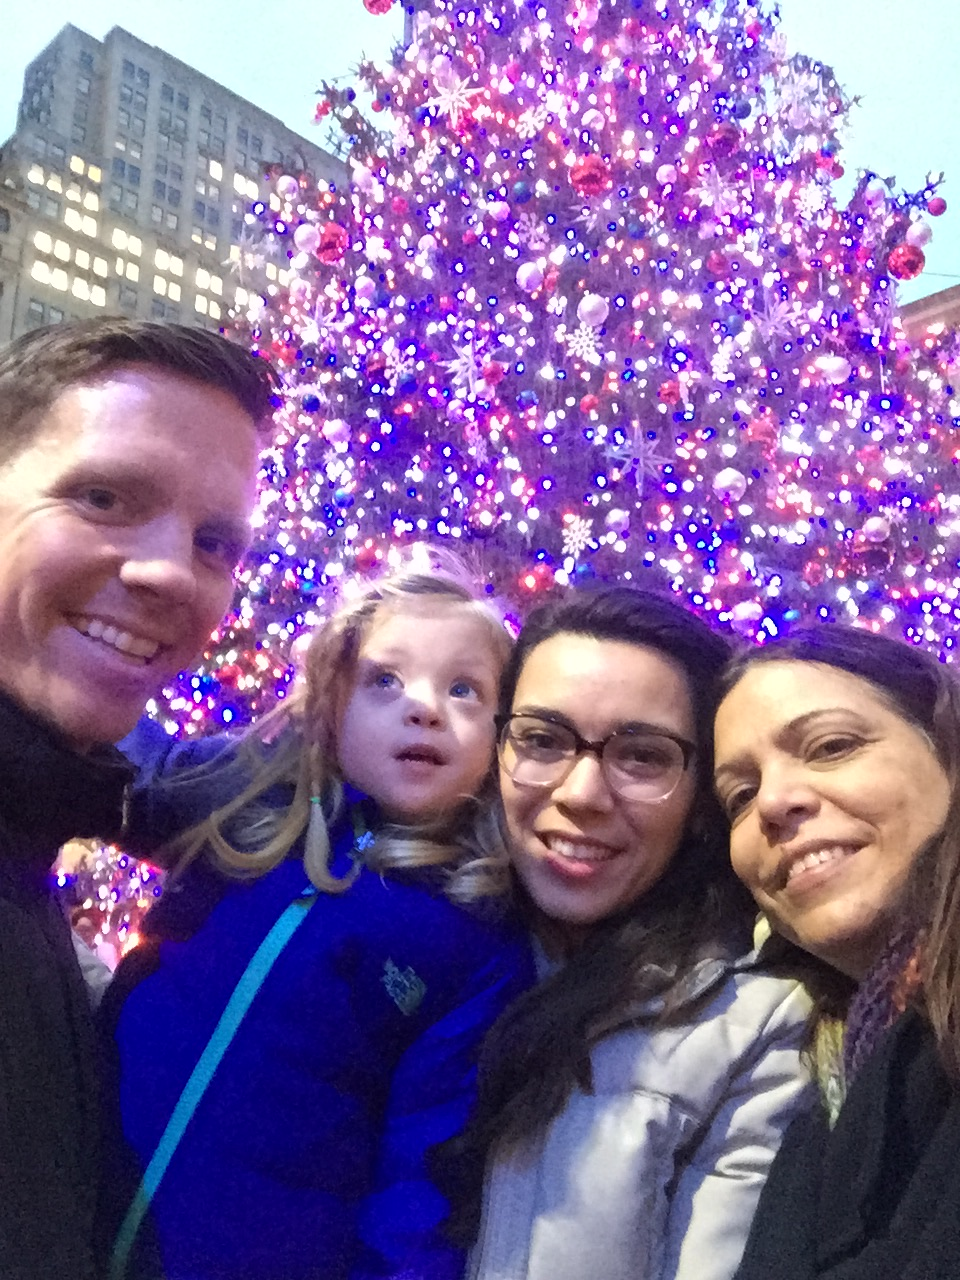 Abuela arrived just in time to soak up all things NYC Christmas. This is us at Bryant Park in front of the Christmas Tree.